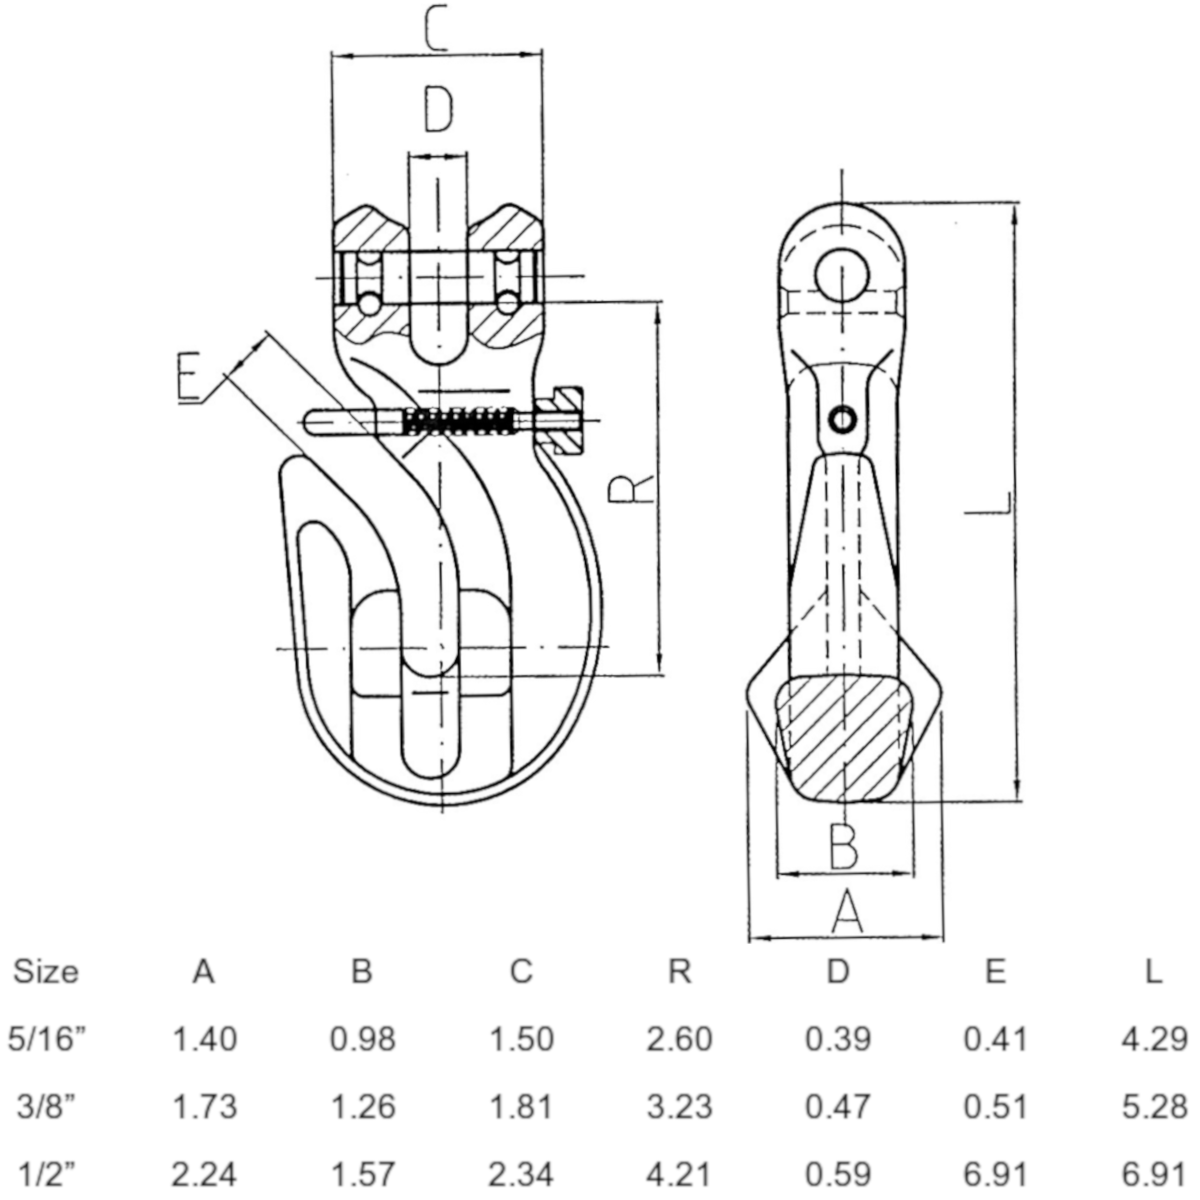 Grade 100 Eye Grab Hook Locking Pin Drawing